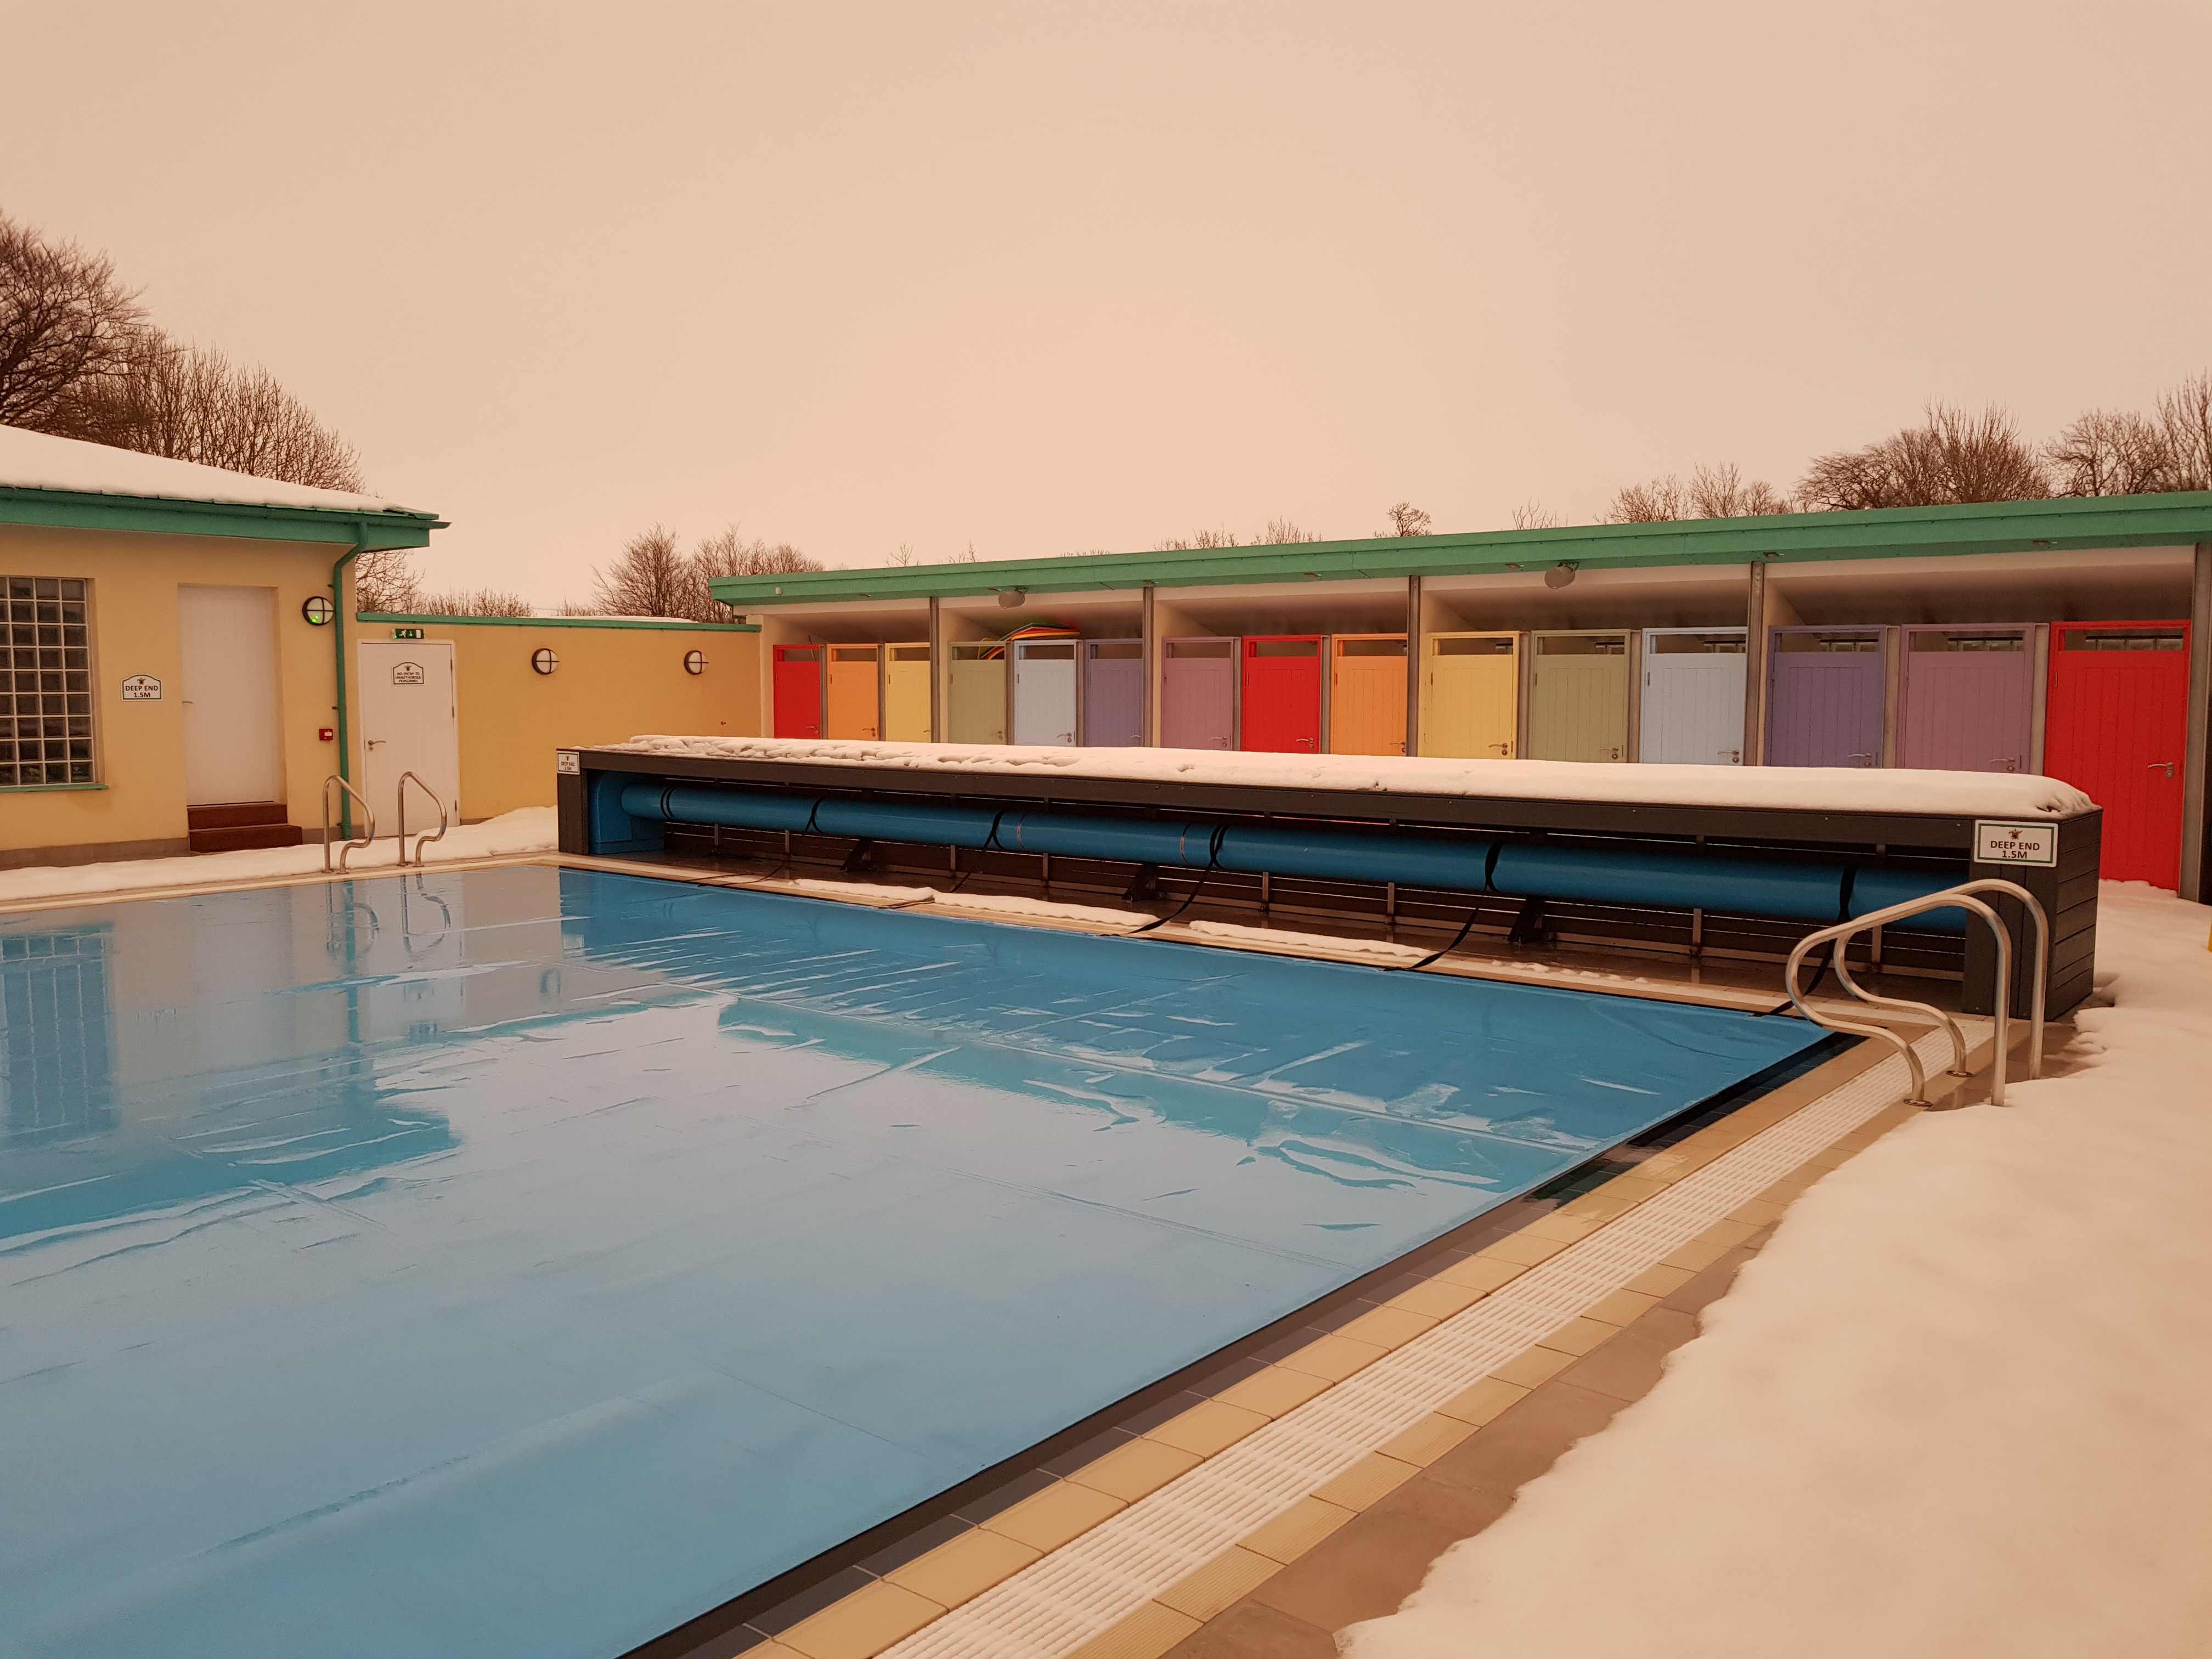 New cumnock swimming pool charles saumarez smith for Unused swimming pool